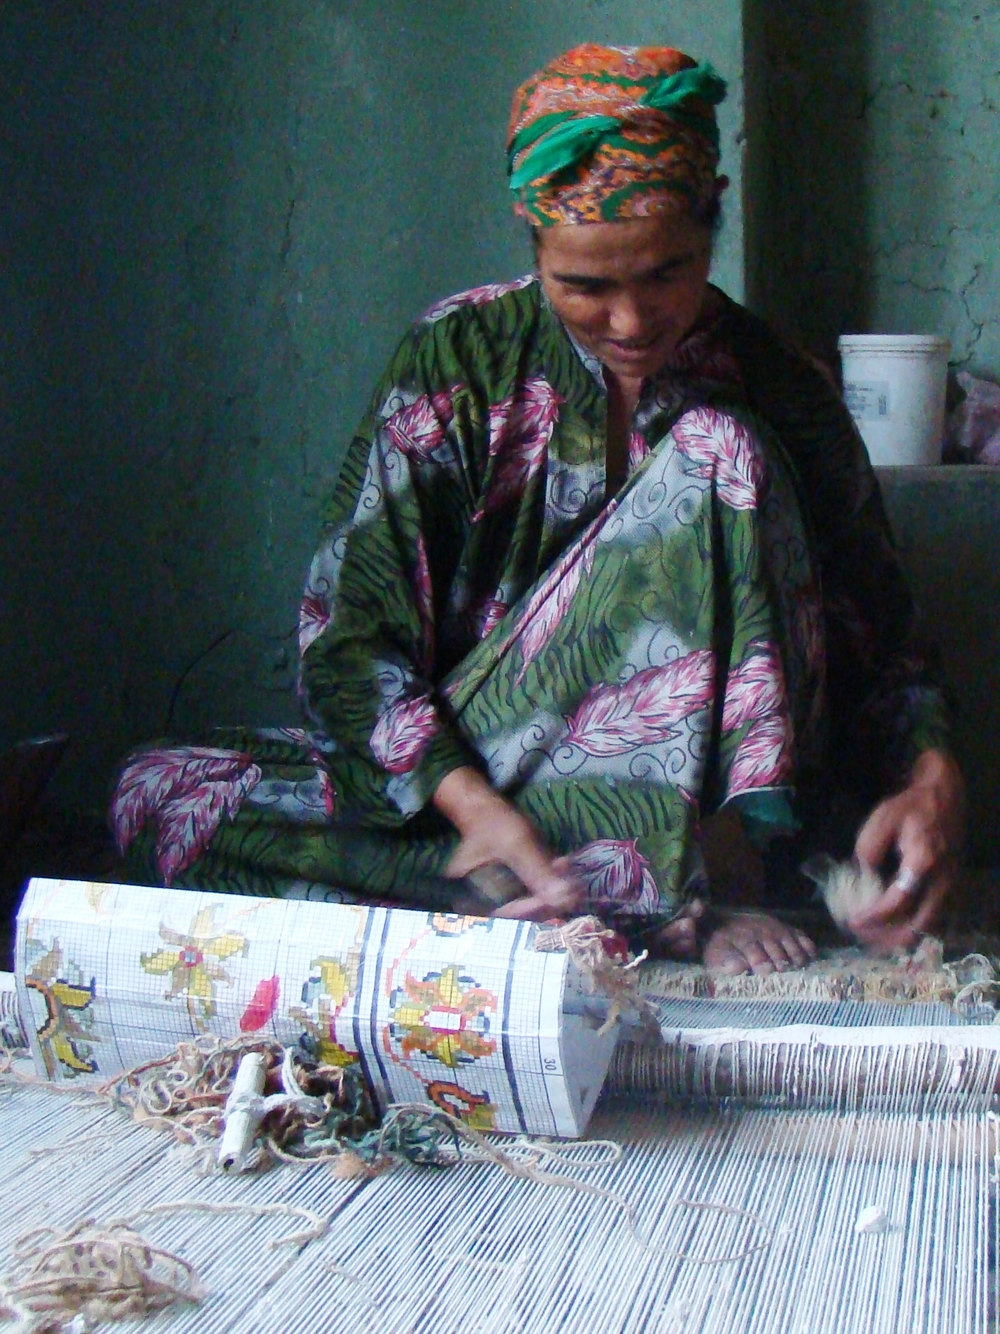 Some women involved in carpet weaving use opium as painkiller